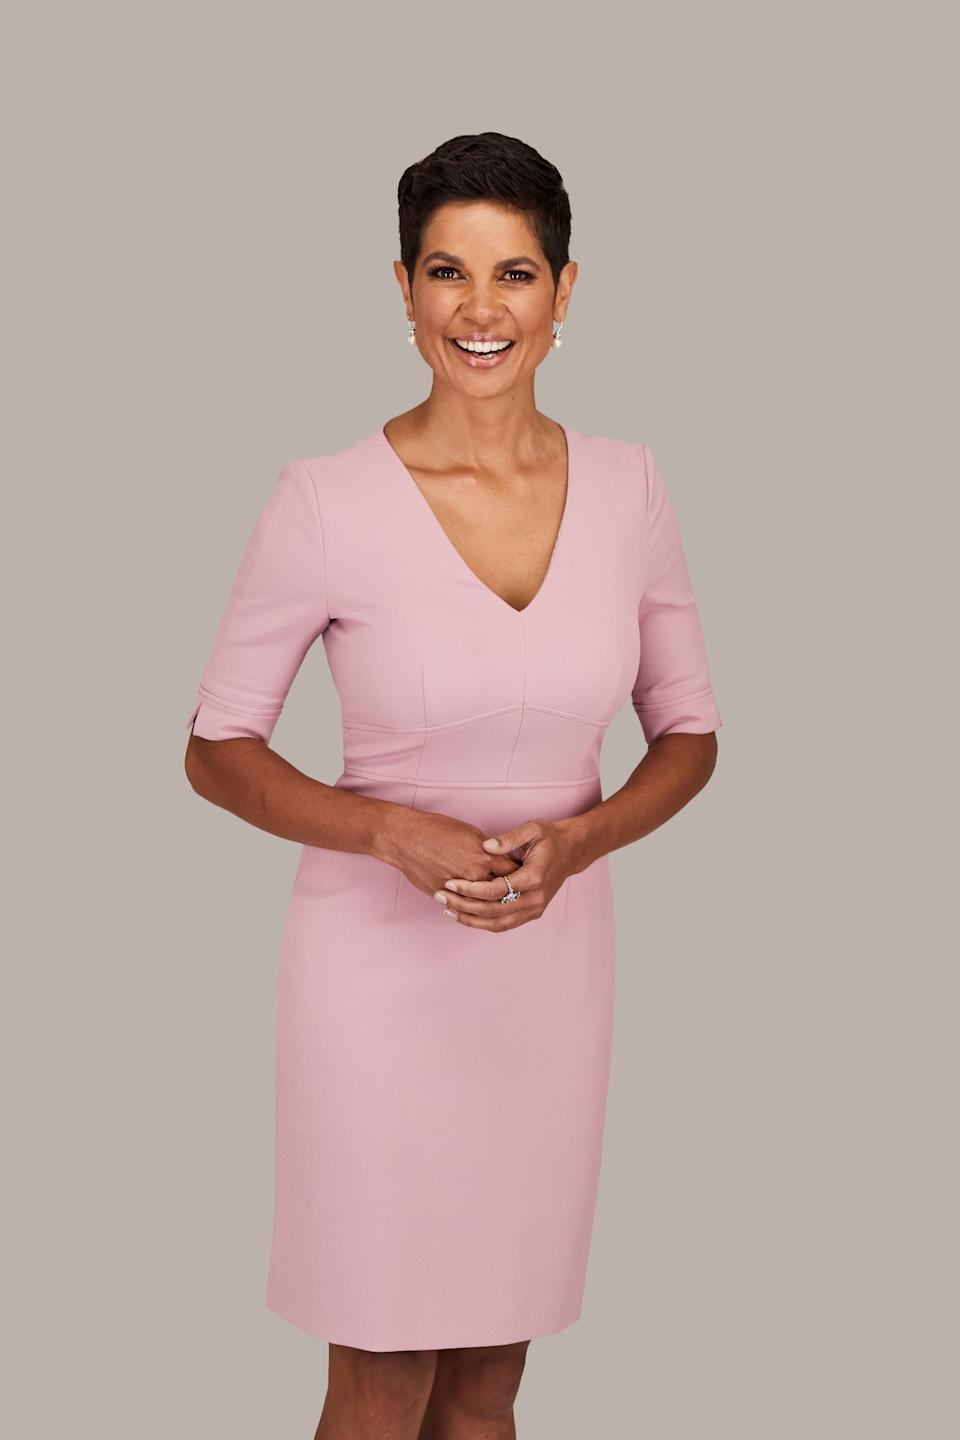 Narelda Jacobs poses in an official photo for Channel 10 wearing a pink dress